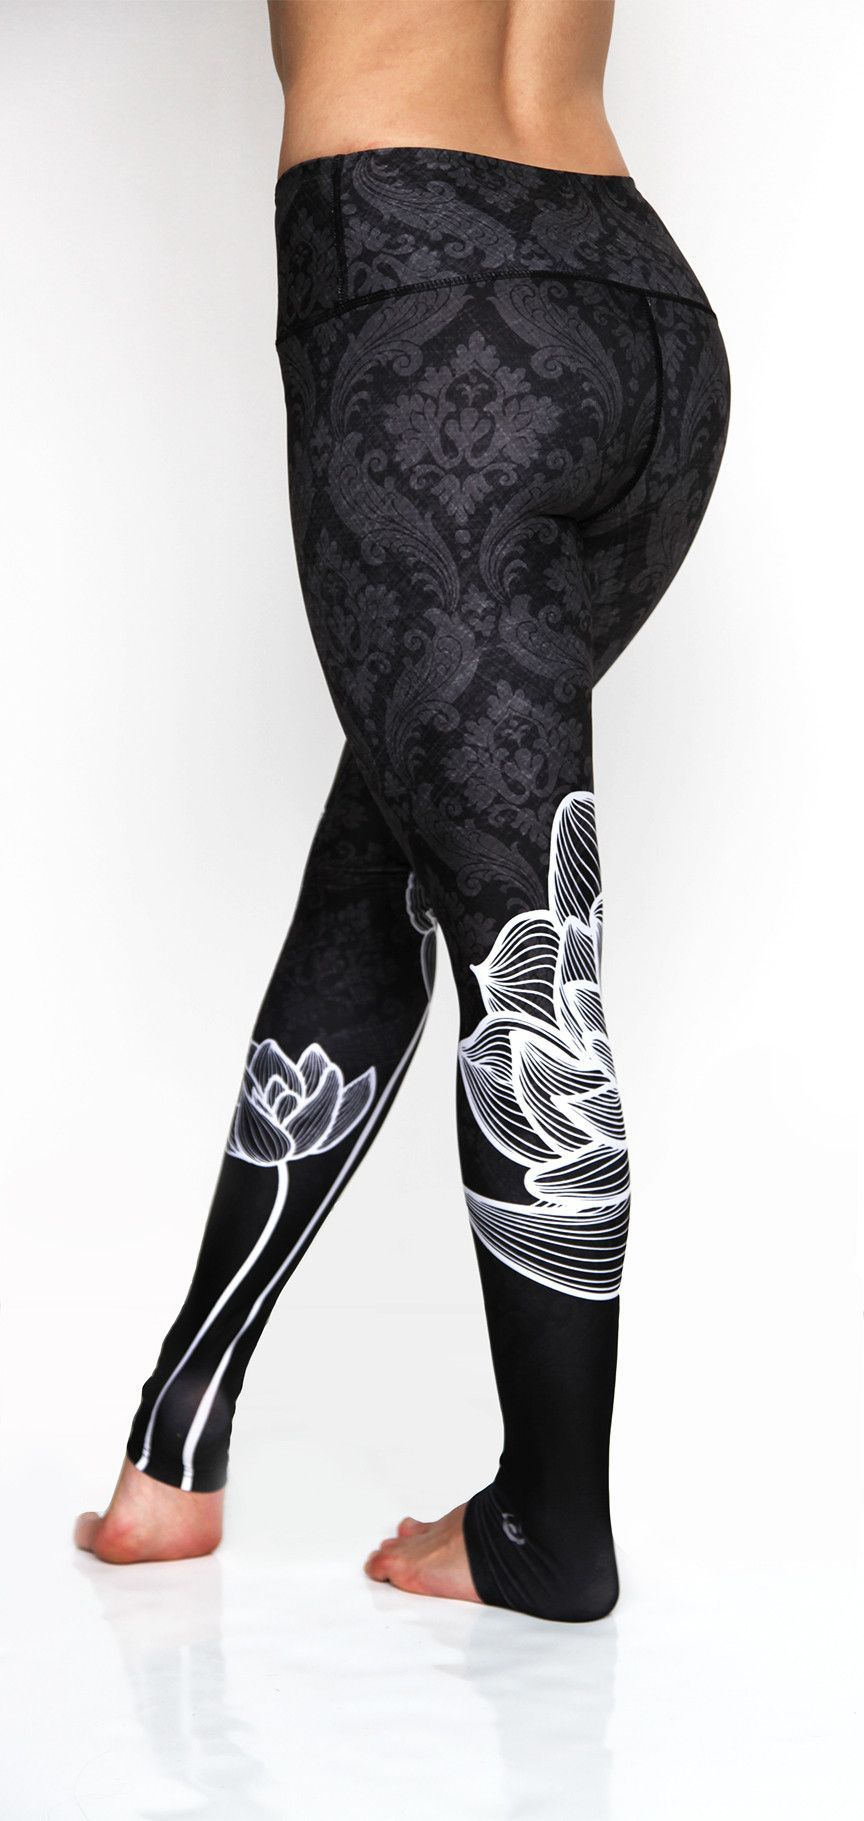 947a7c87a1 Wear them once and you will treat these Inner Fire leggings as sacred as  the…